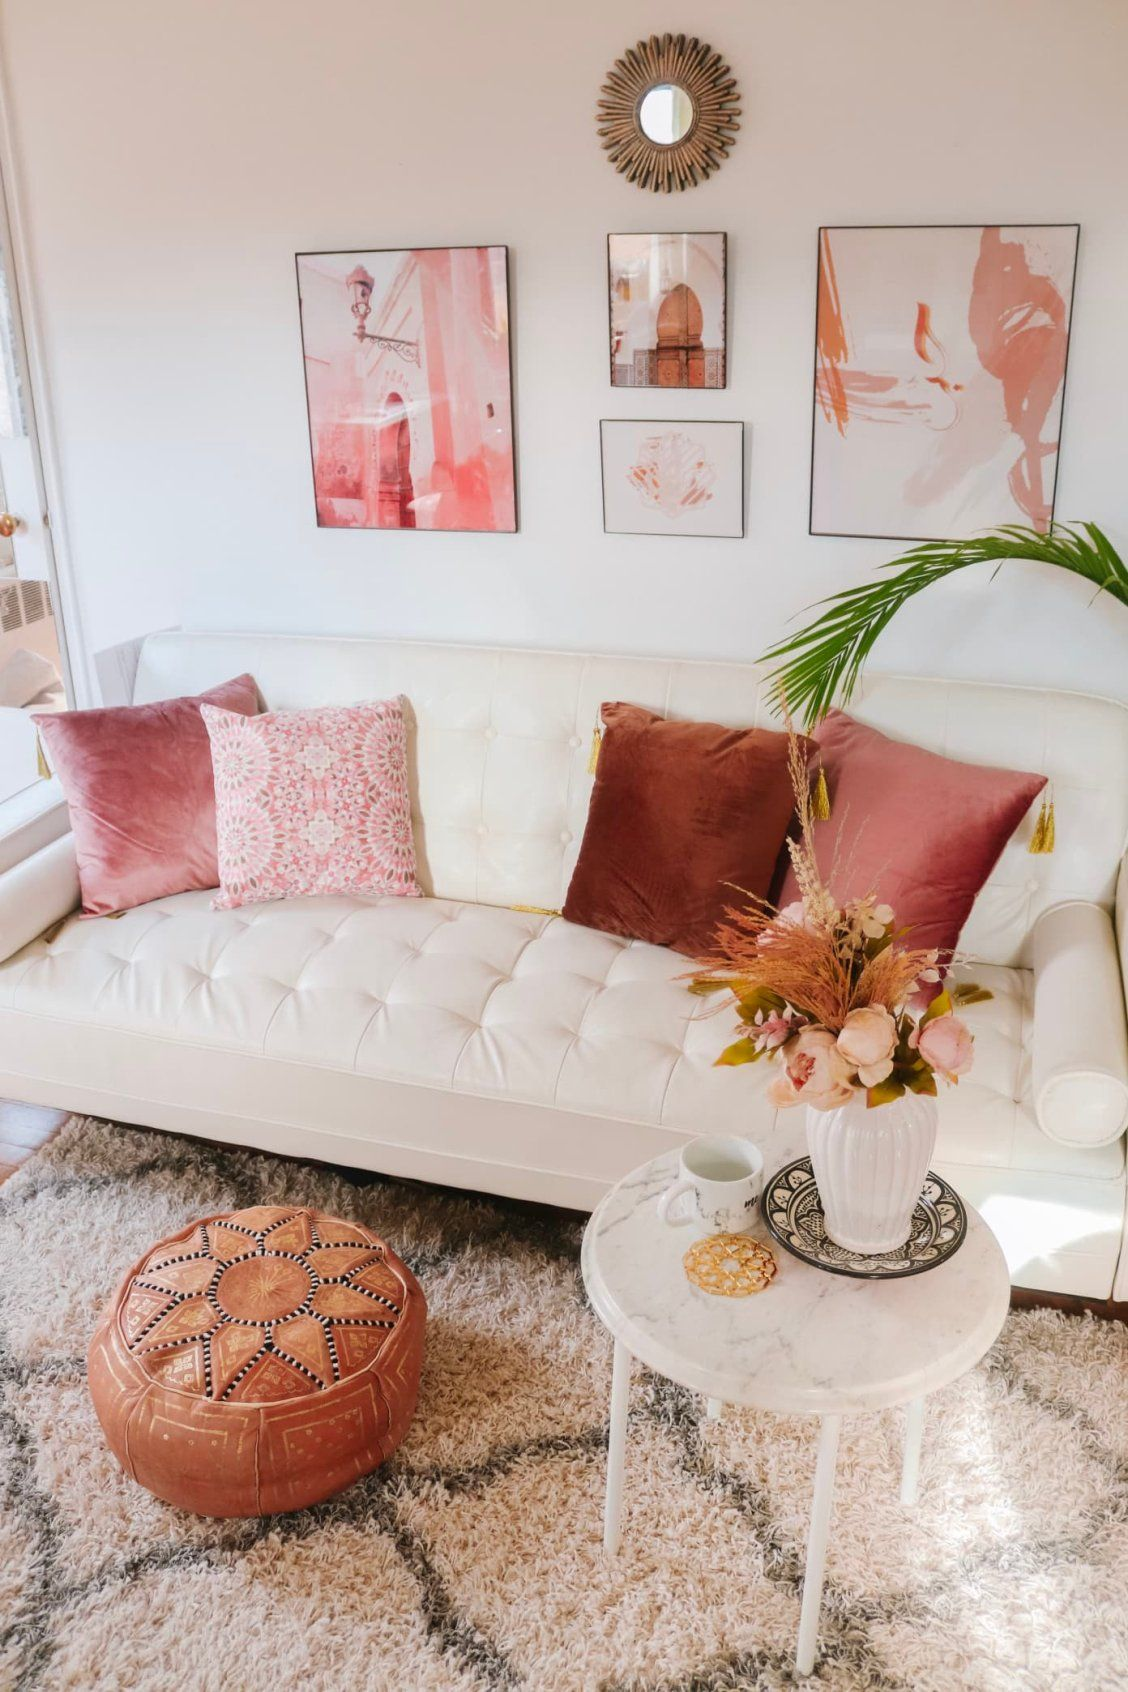 This 500-square-foot NYC studio fits lots of color and texture into a small space without being cluttered. | House Tours by Apartment Therapt #livingroom #boho #livingroomideas #bohemian #bohemiandecor #boholivingroom #pinklivingroom #apartmentdecor #decoratingideas #studioapartment